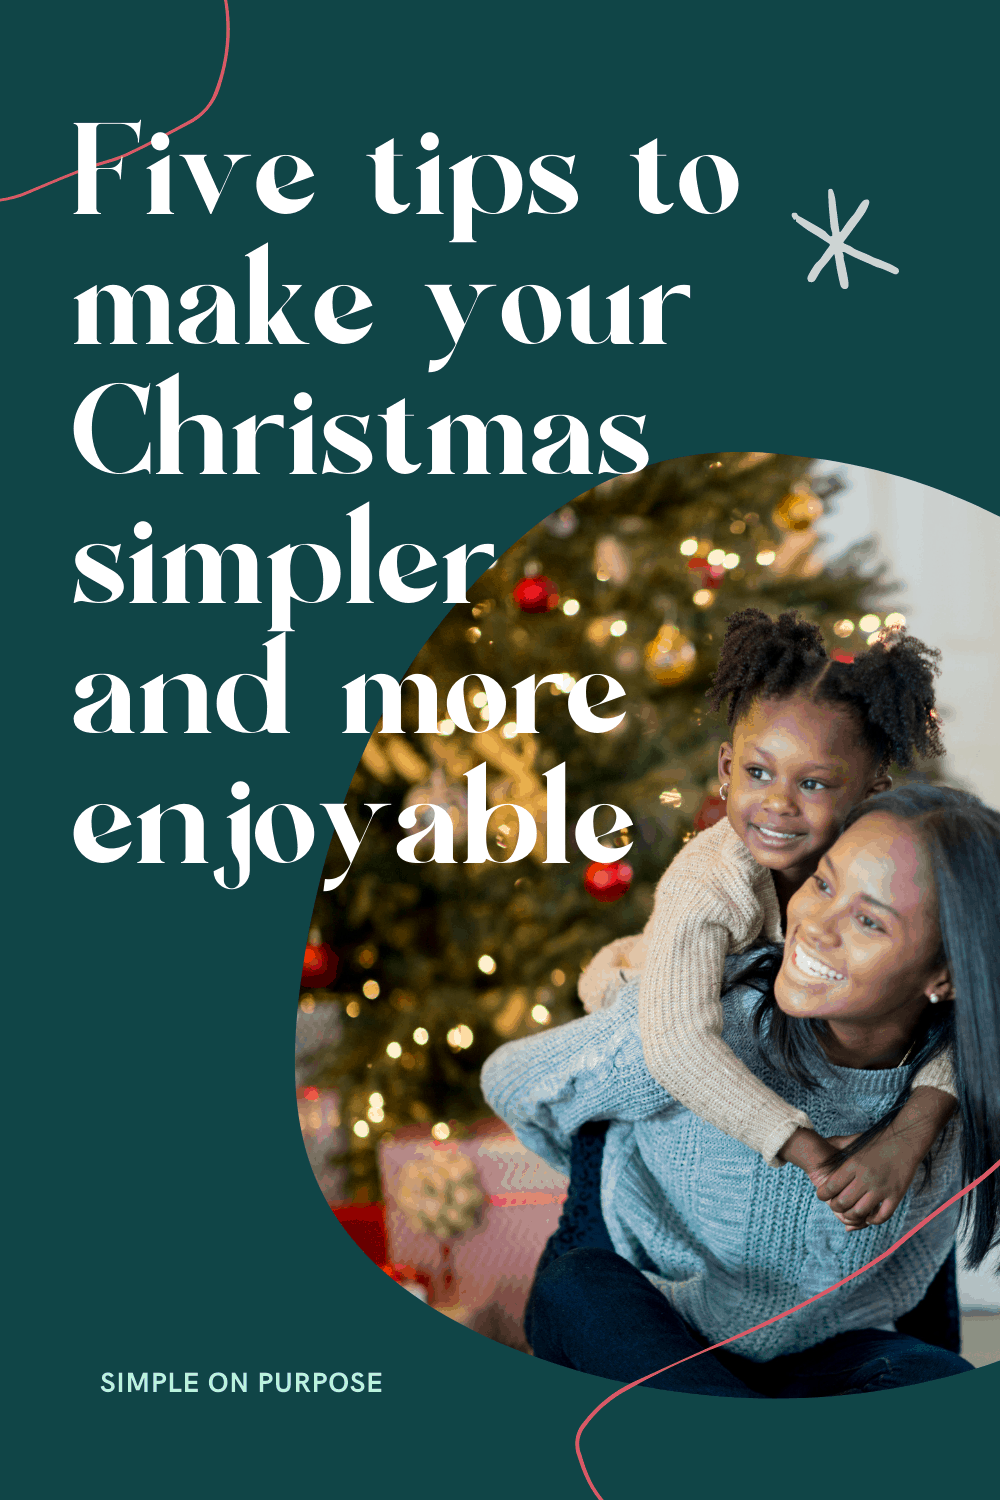 five tips to make your christmas simpler and more enjoyable